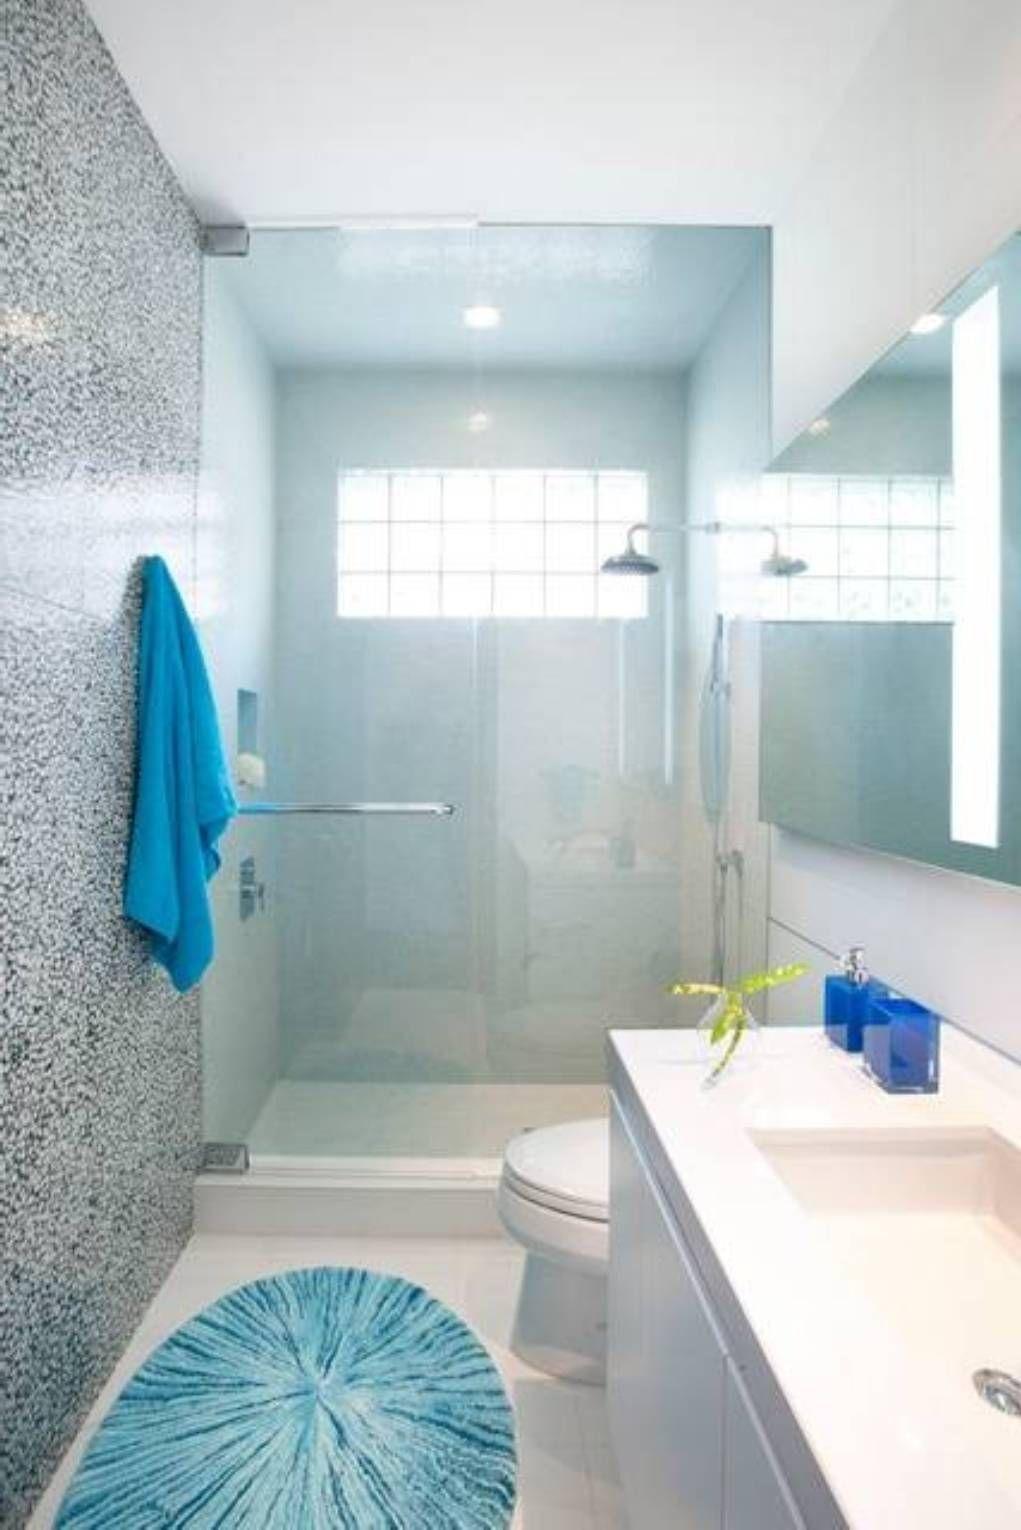 Simple bathroom shower - 25 Small Bathroom Ideas Photo Gallery